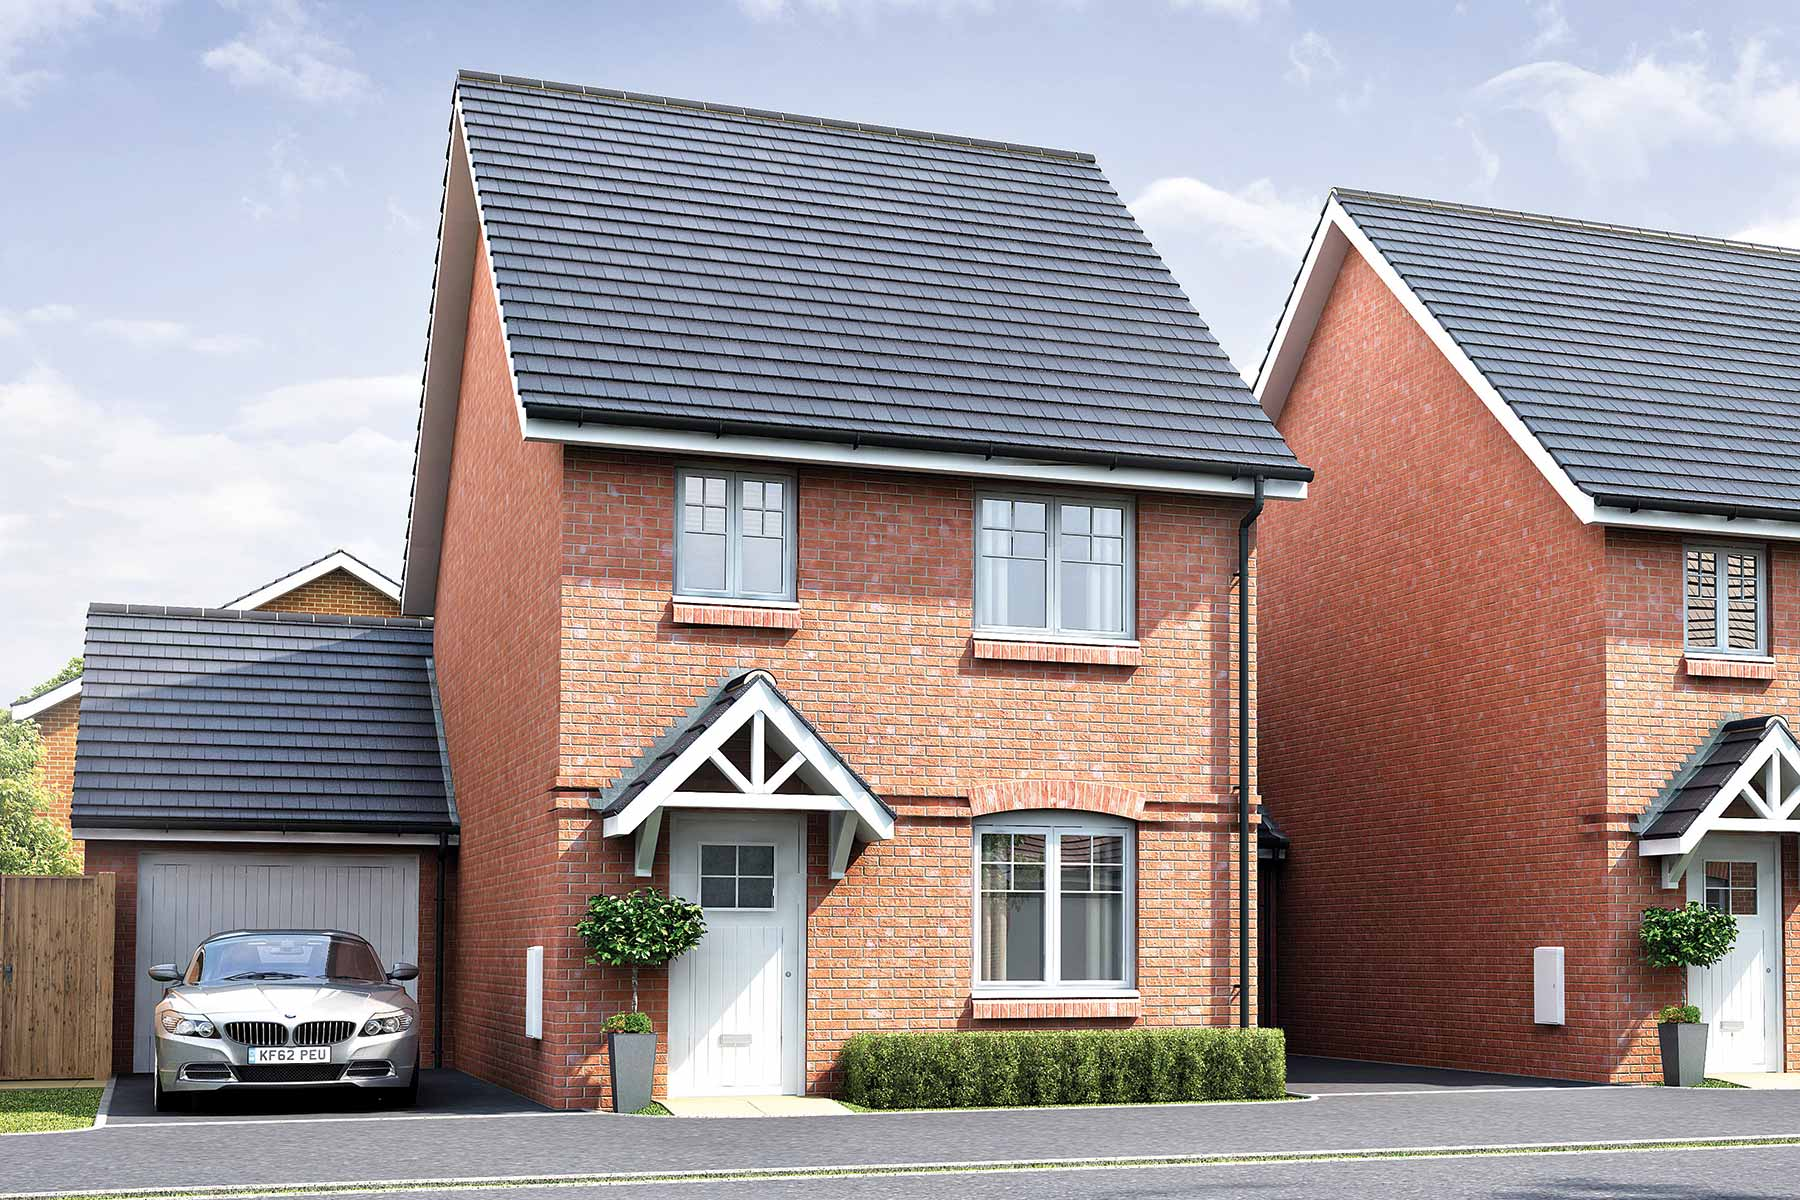 Artists impression of typical Flatford home